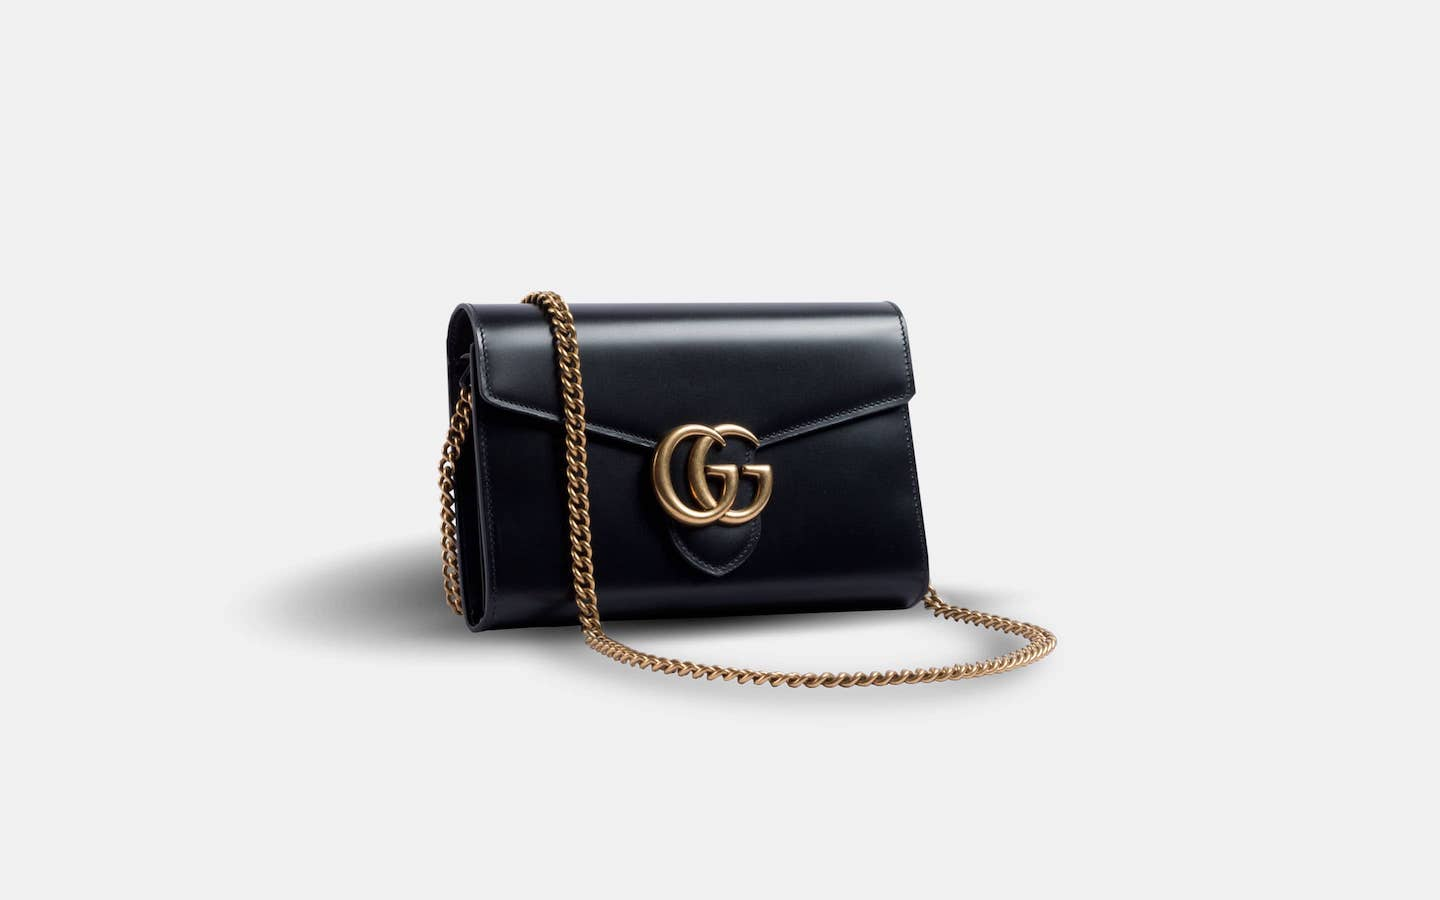 66ba67d7500c ... gucci-marmont-close-front-min-min;  Gucci_Marmont_Chain_Wallet_Black_Clutch_Front- ...